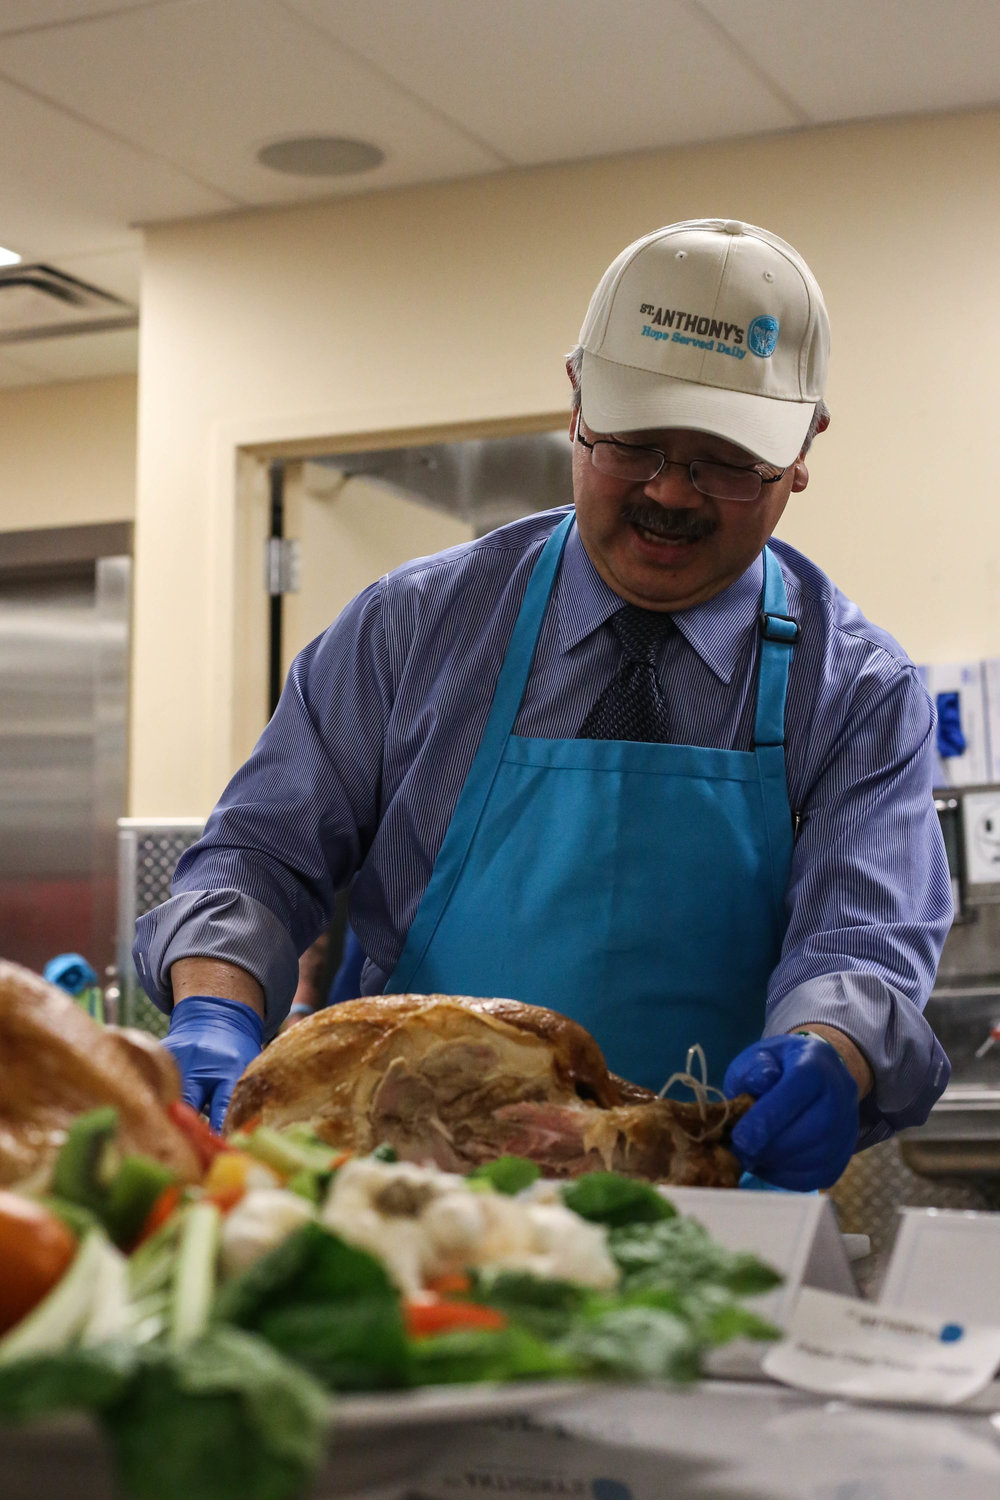 Mayor Lee is among the many volunteers that came out on Wednesday, November 23, 2016 to help St. Anthony's chefs put the finishing touches on over 3,500 Thanksgiving Day meals that will serve the homeless Mid-Market community, San Francisco, California, (Jessica Webb)